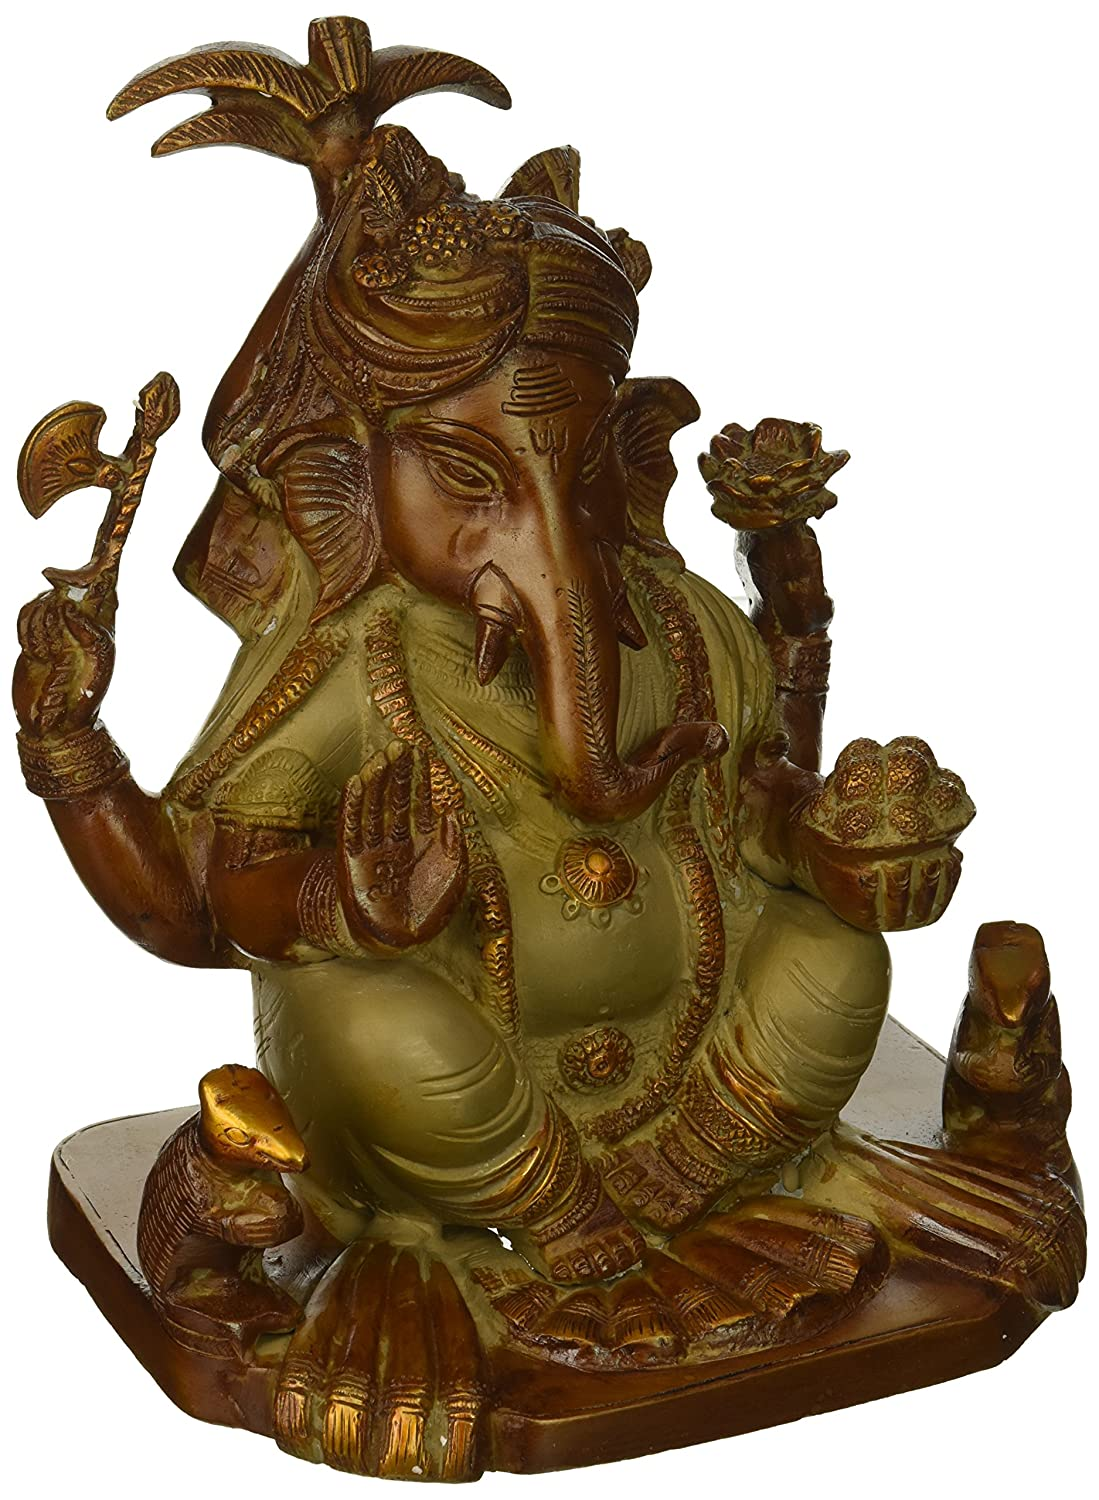 CDM product Exotic India Hindu God Ganesha Statue Brass, 9 Inches Height big image